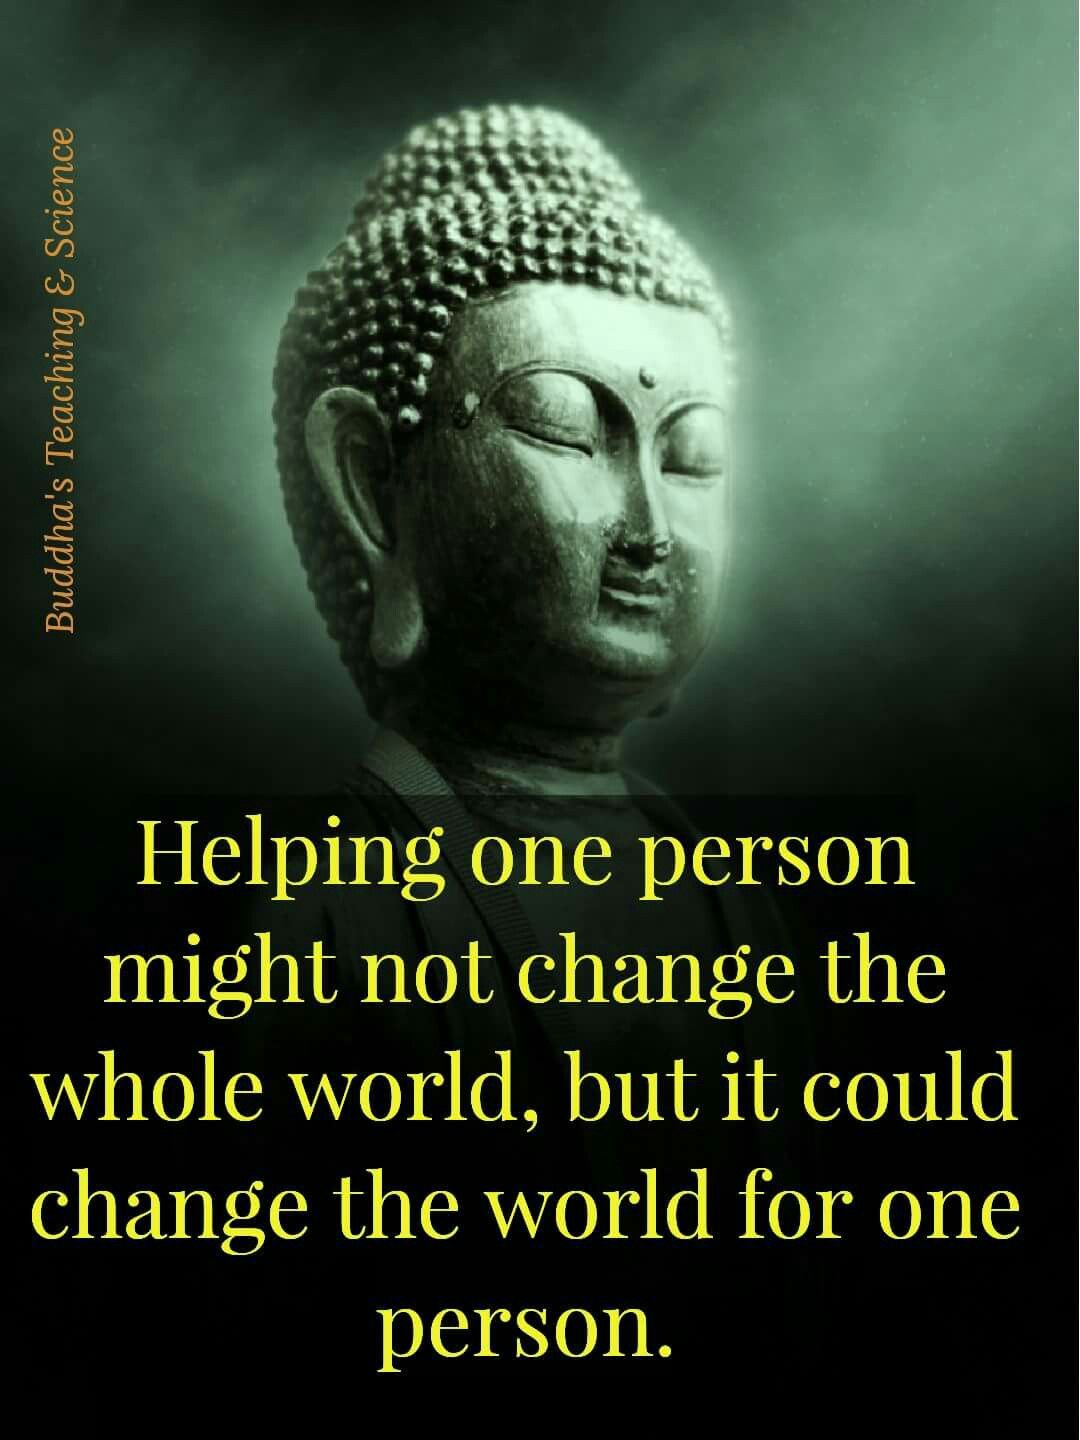 Lord Buddha Life Changing Quotes